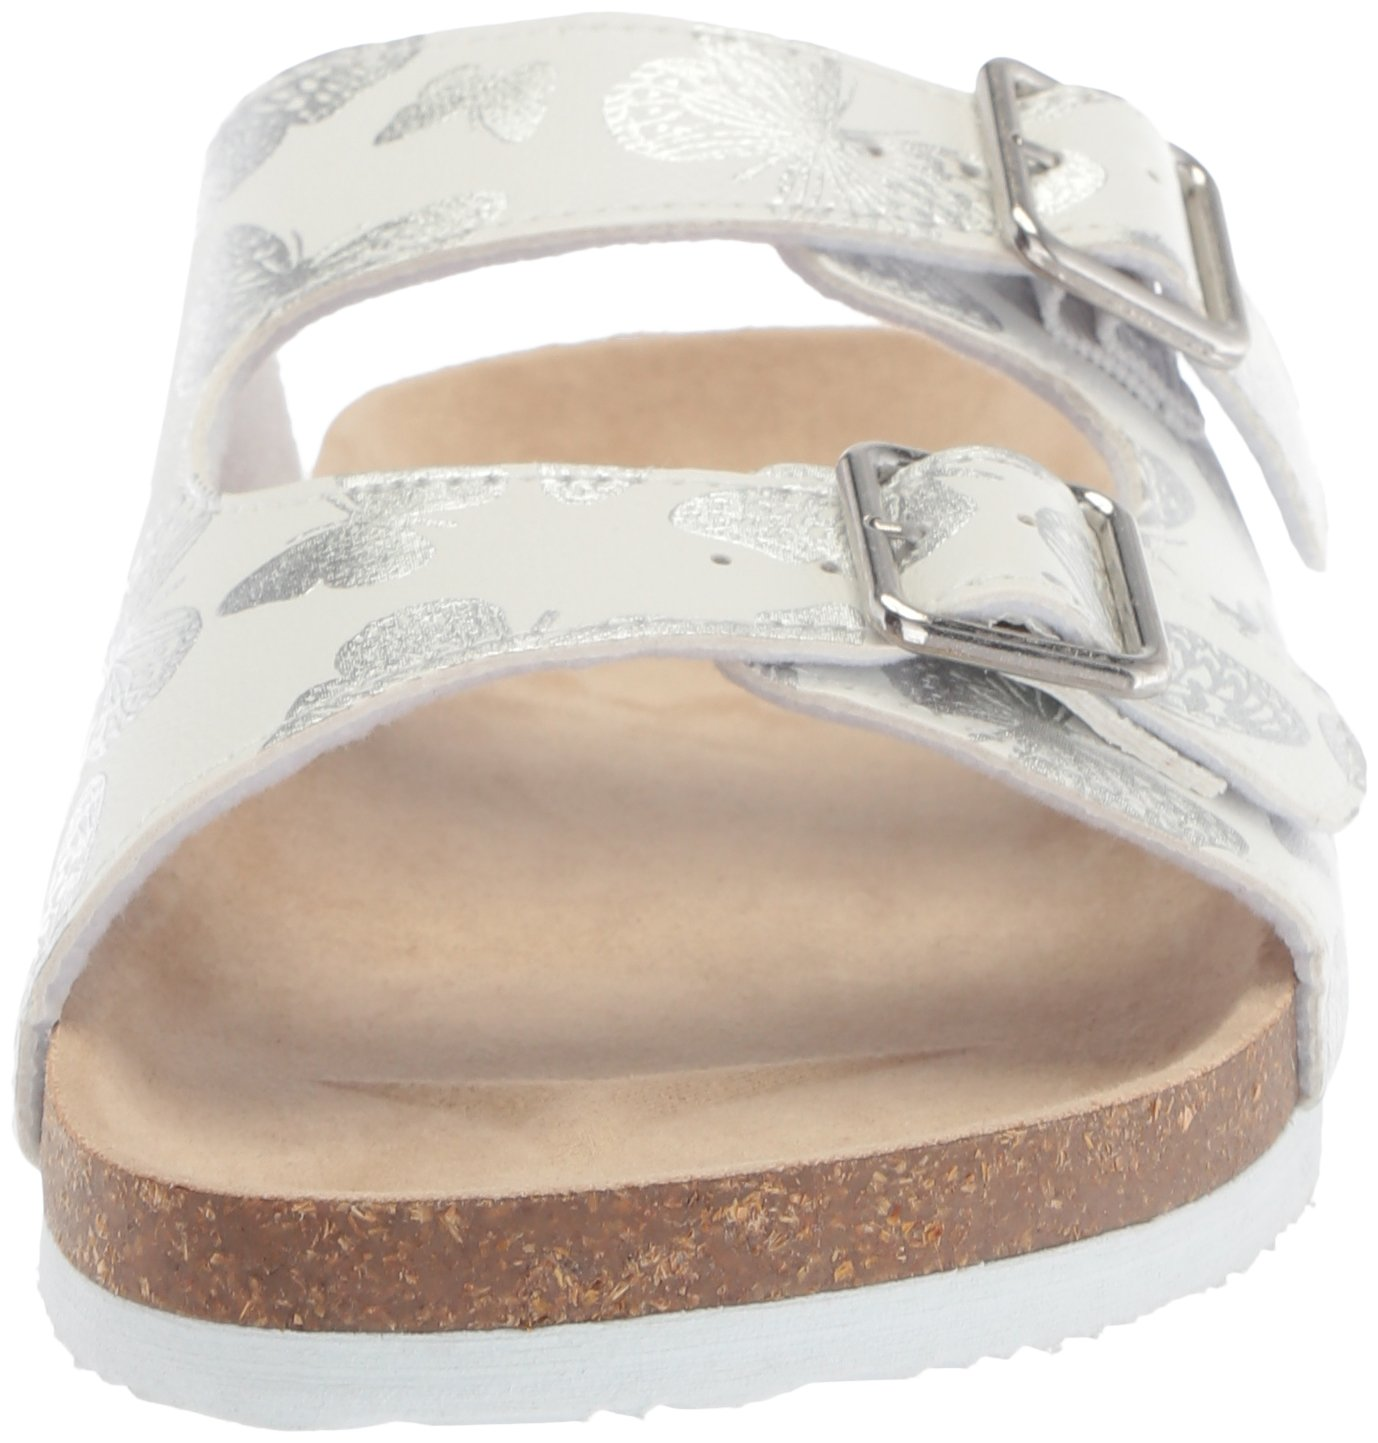 The Children's Place Girls' BG Butterfly LUN Flat Sandal, White, Youth 11 Medium US Big Kid by The Children's Place (Image #4)